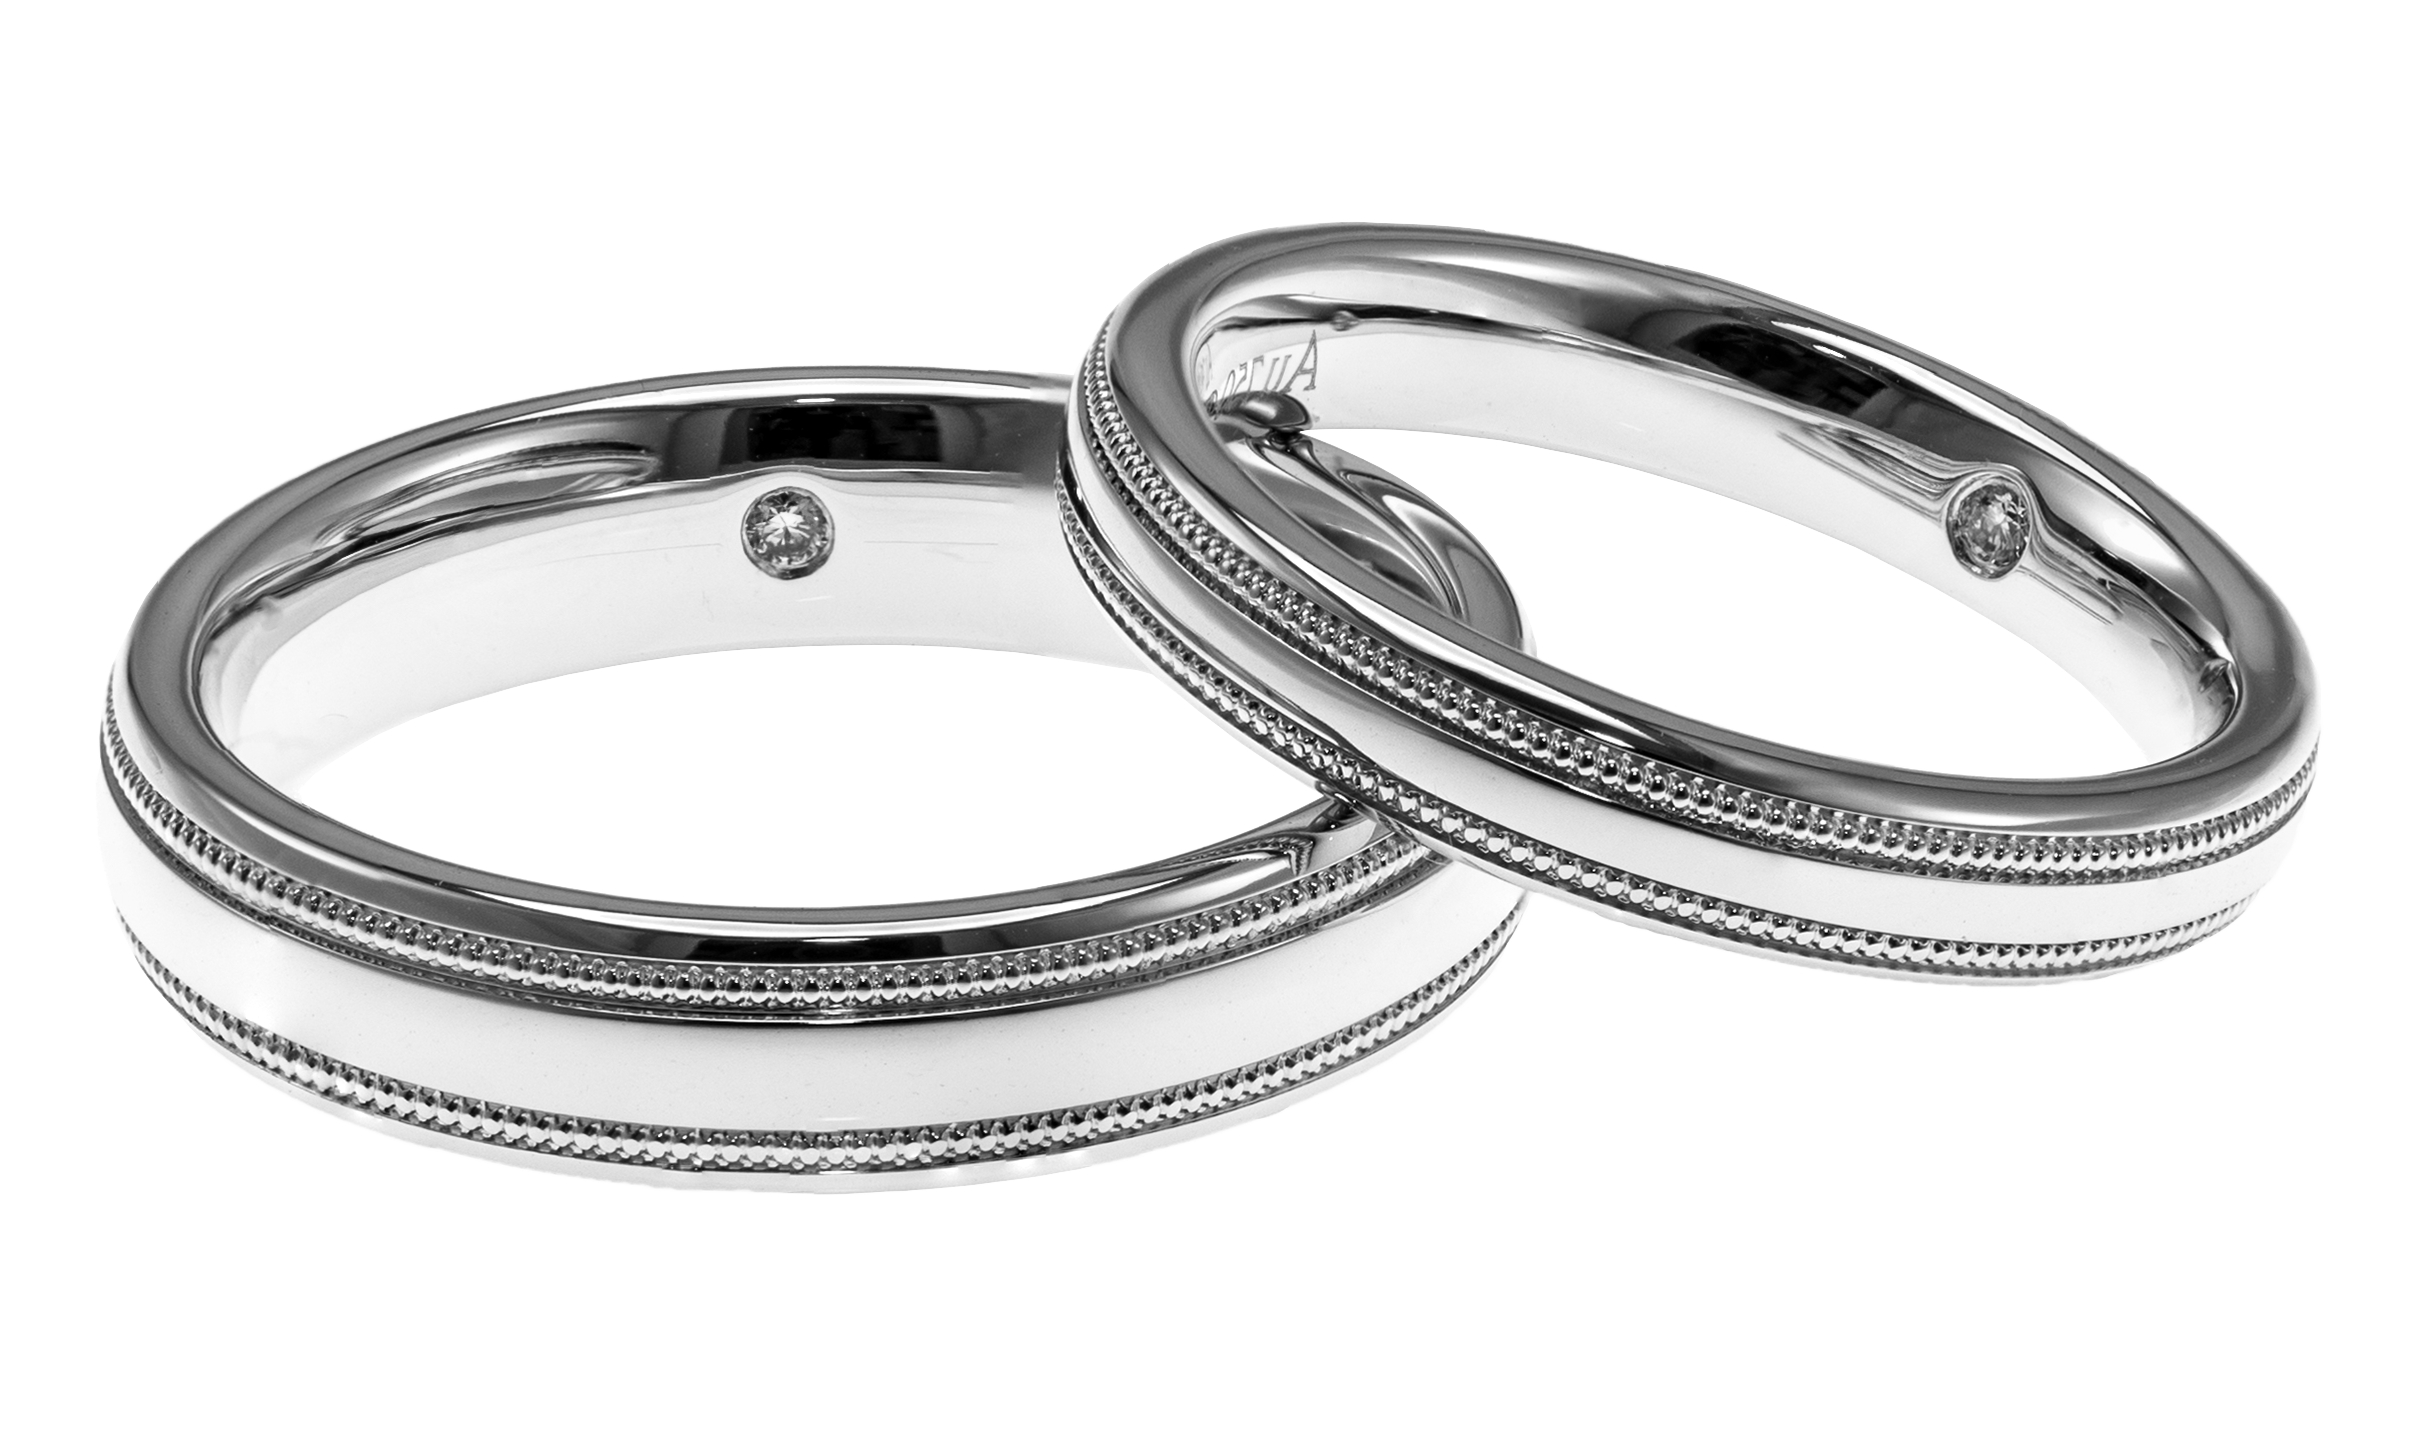 Jewelry ring PNG images free download.